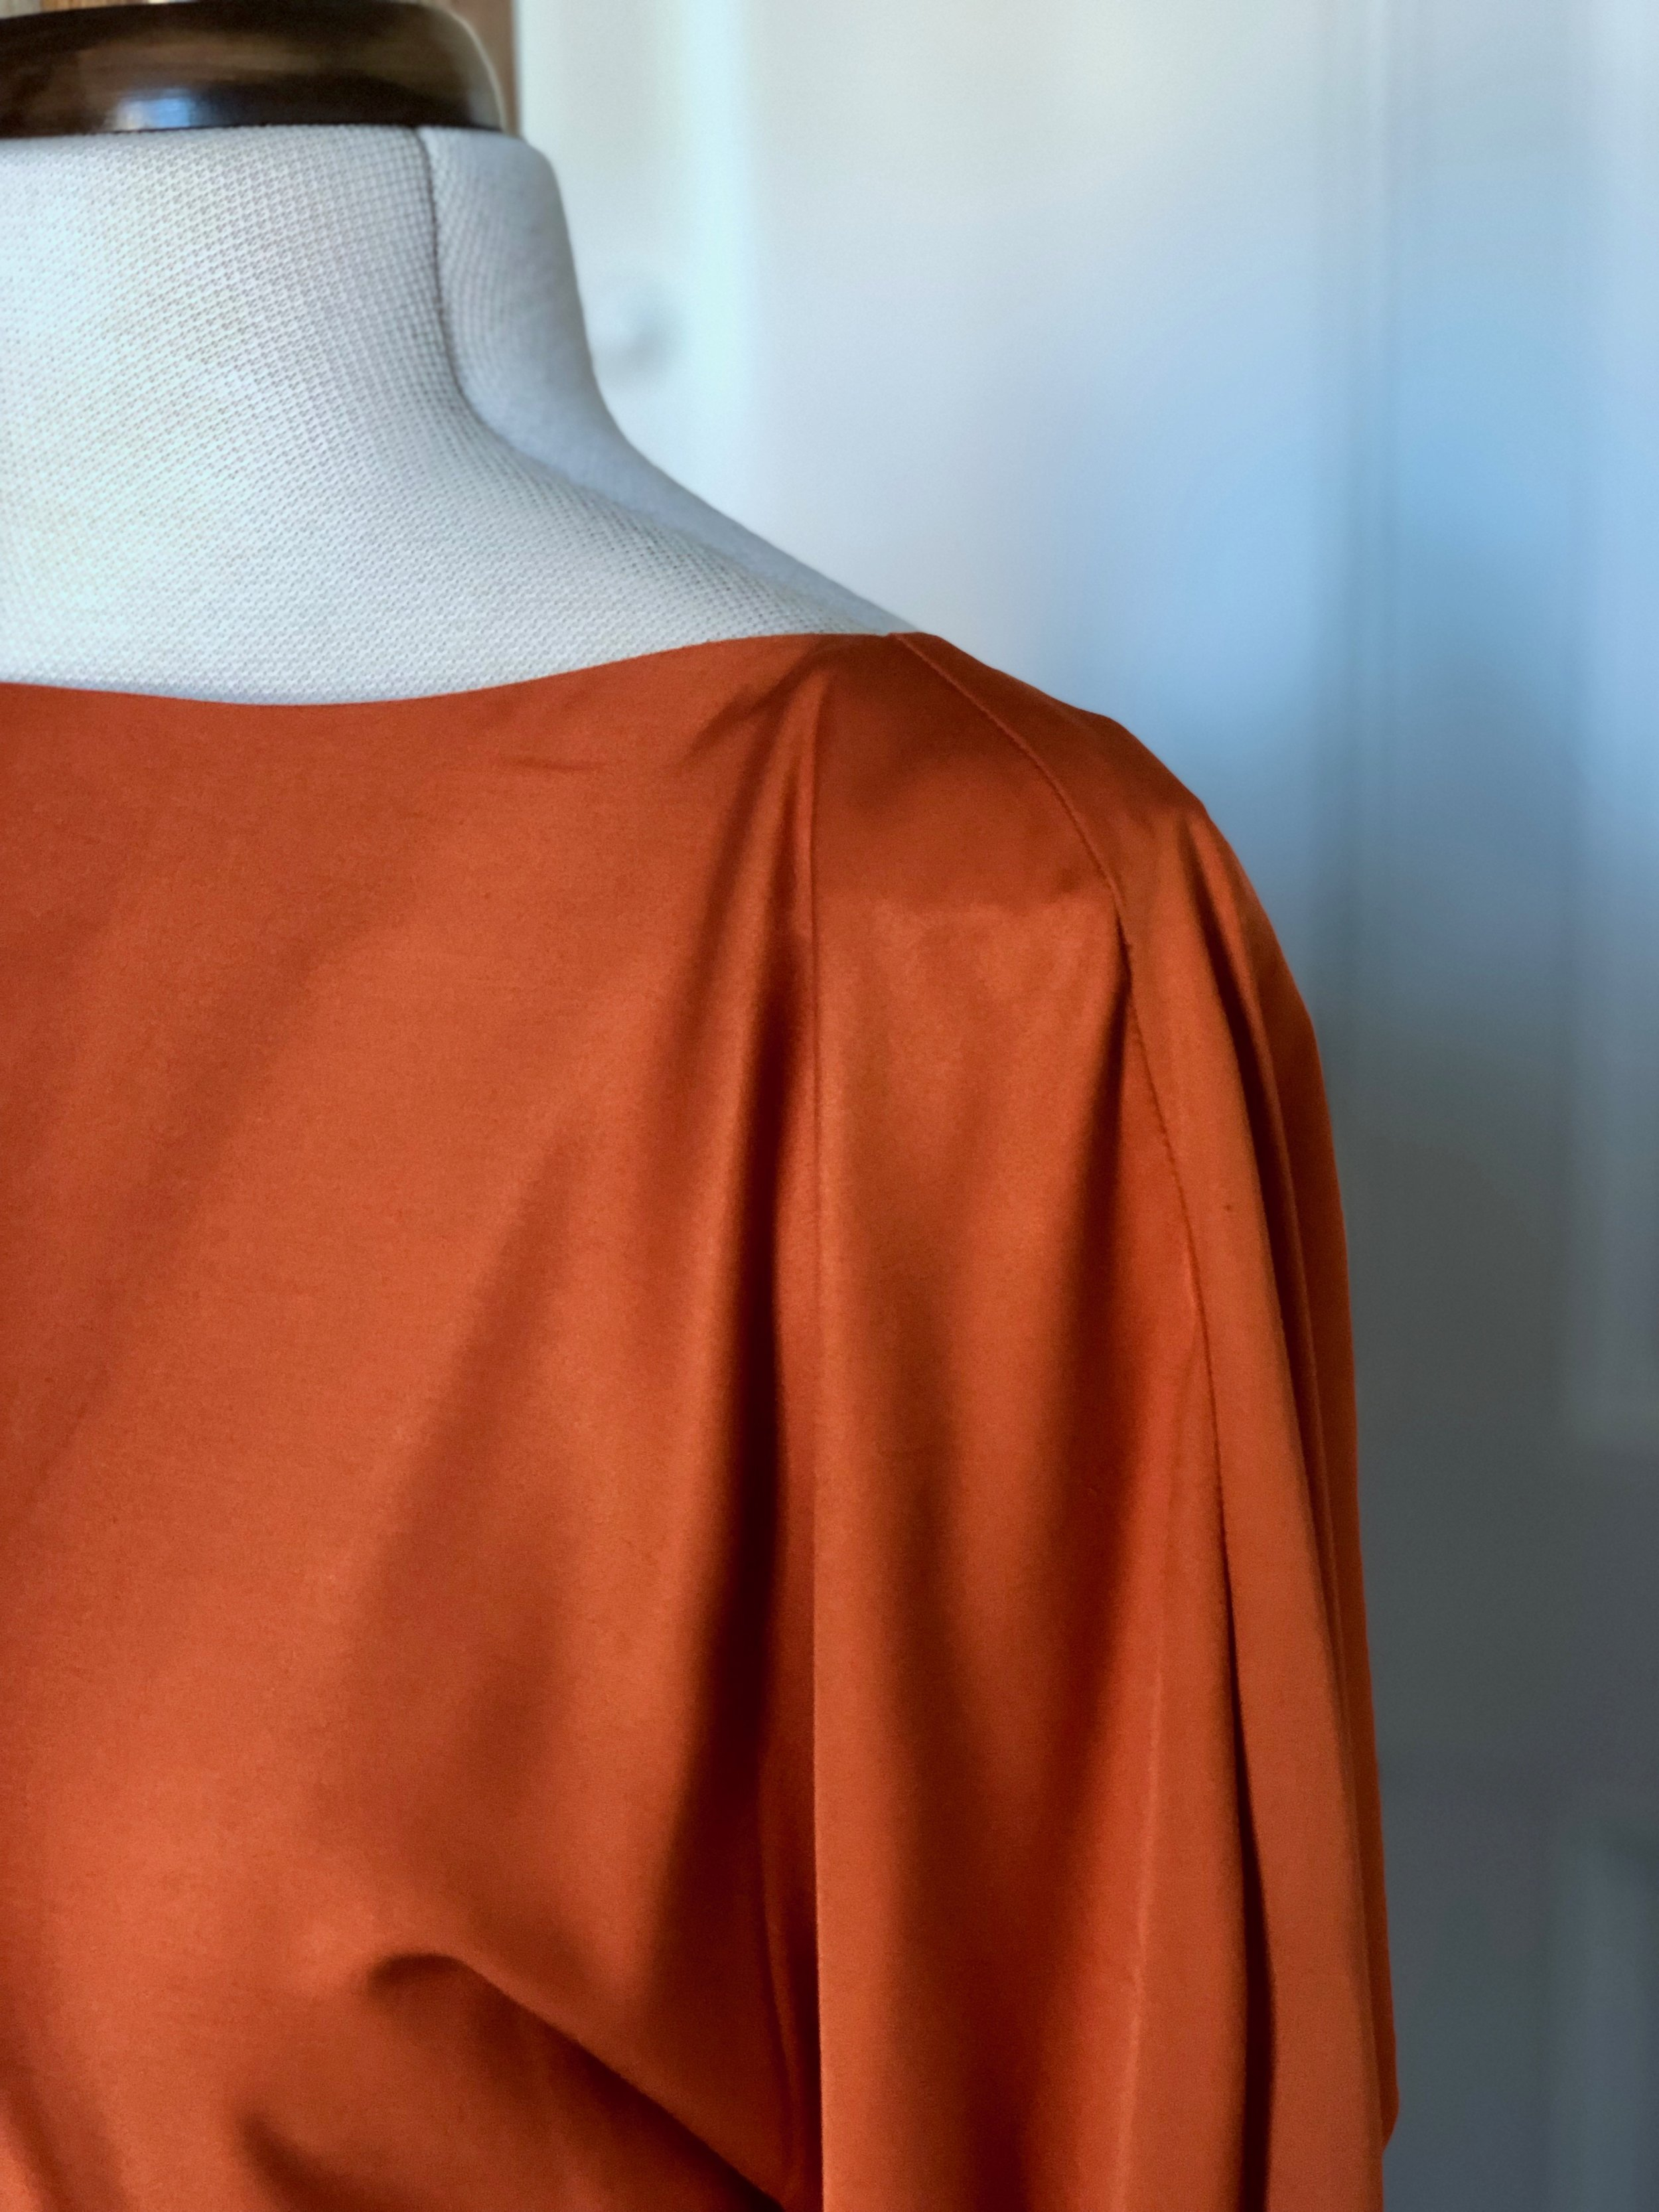 ORANGEBACKLESSDRESS_IMG_3220.jpg